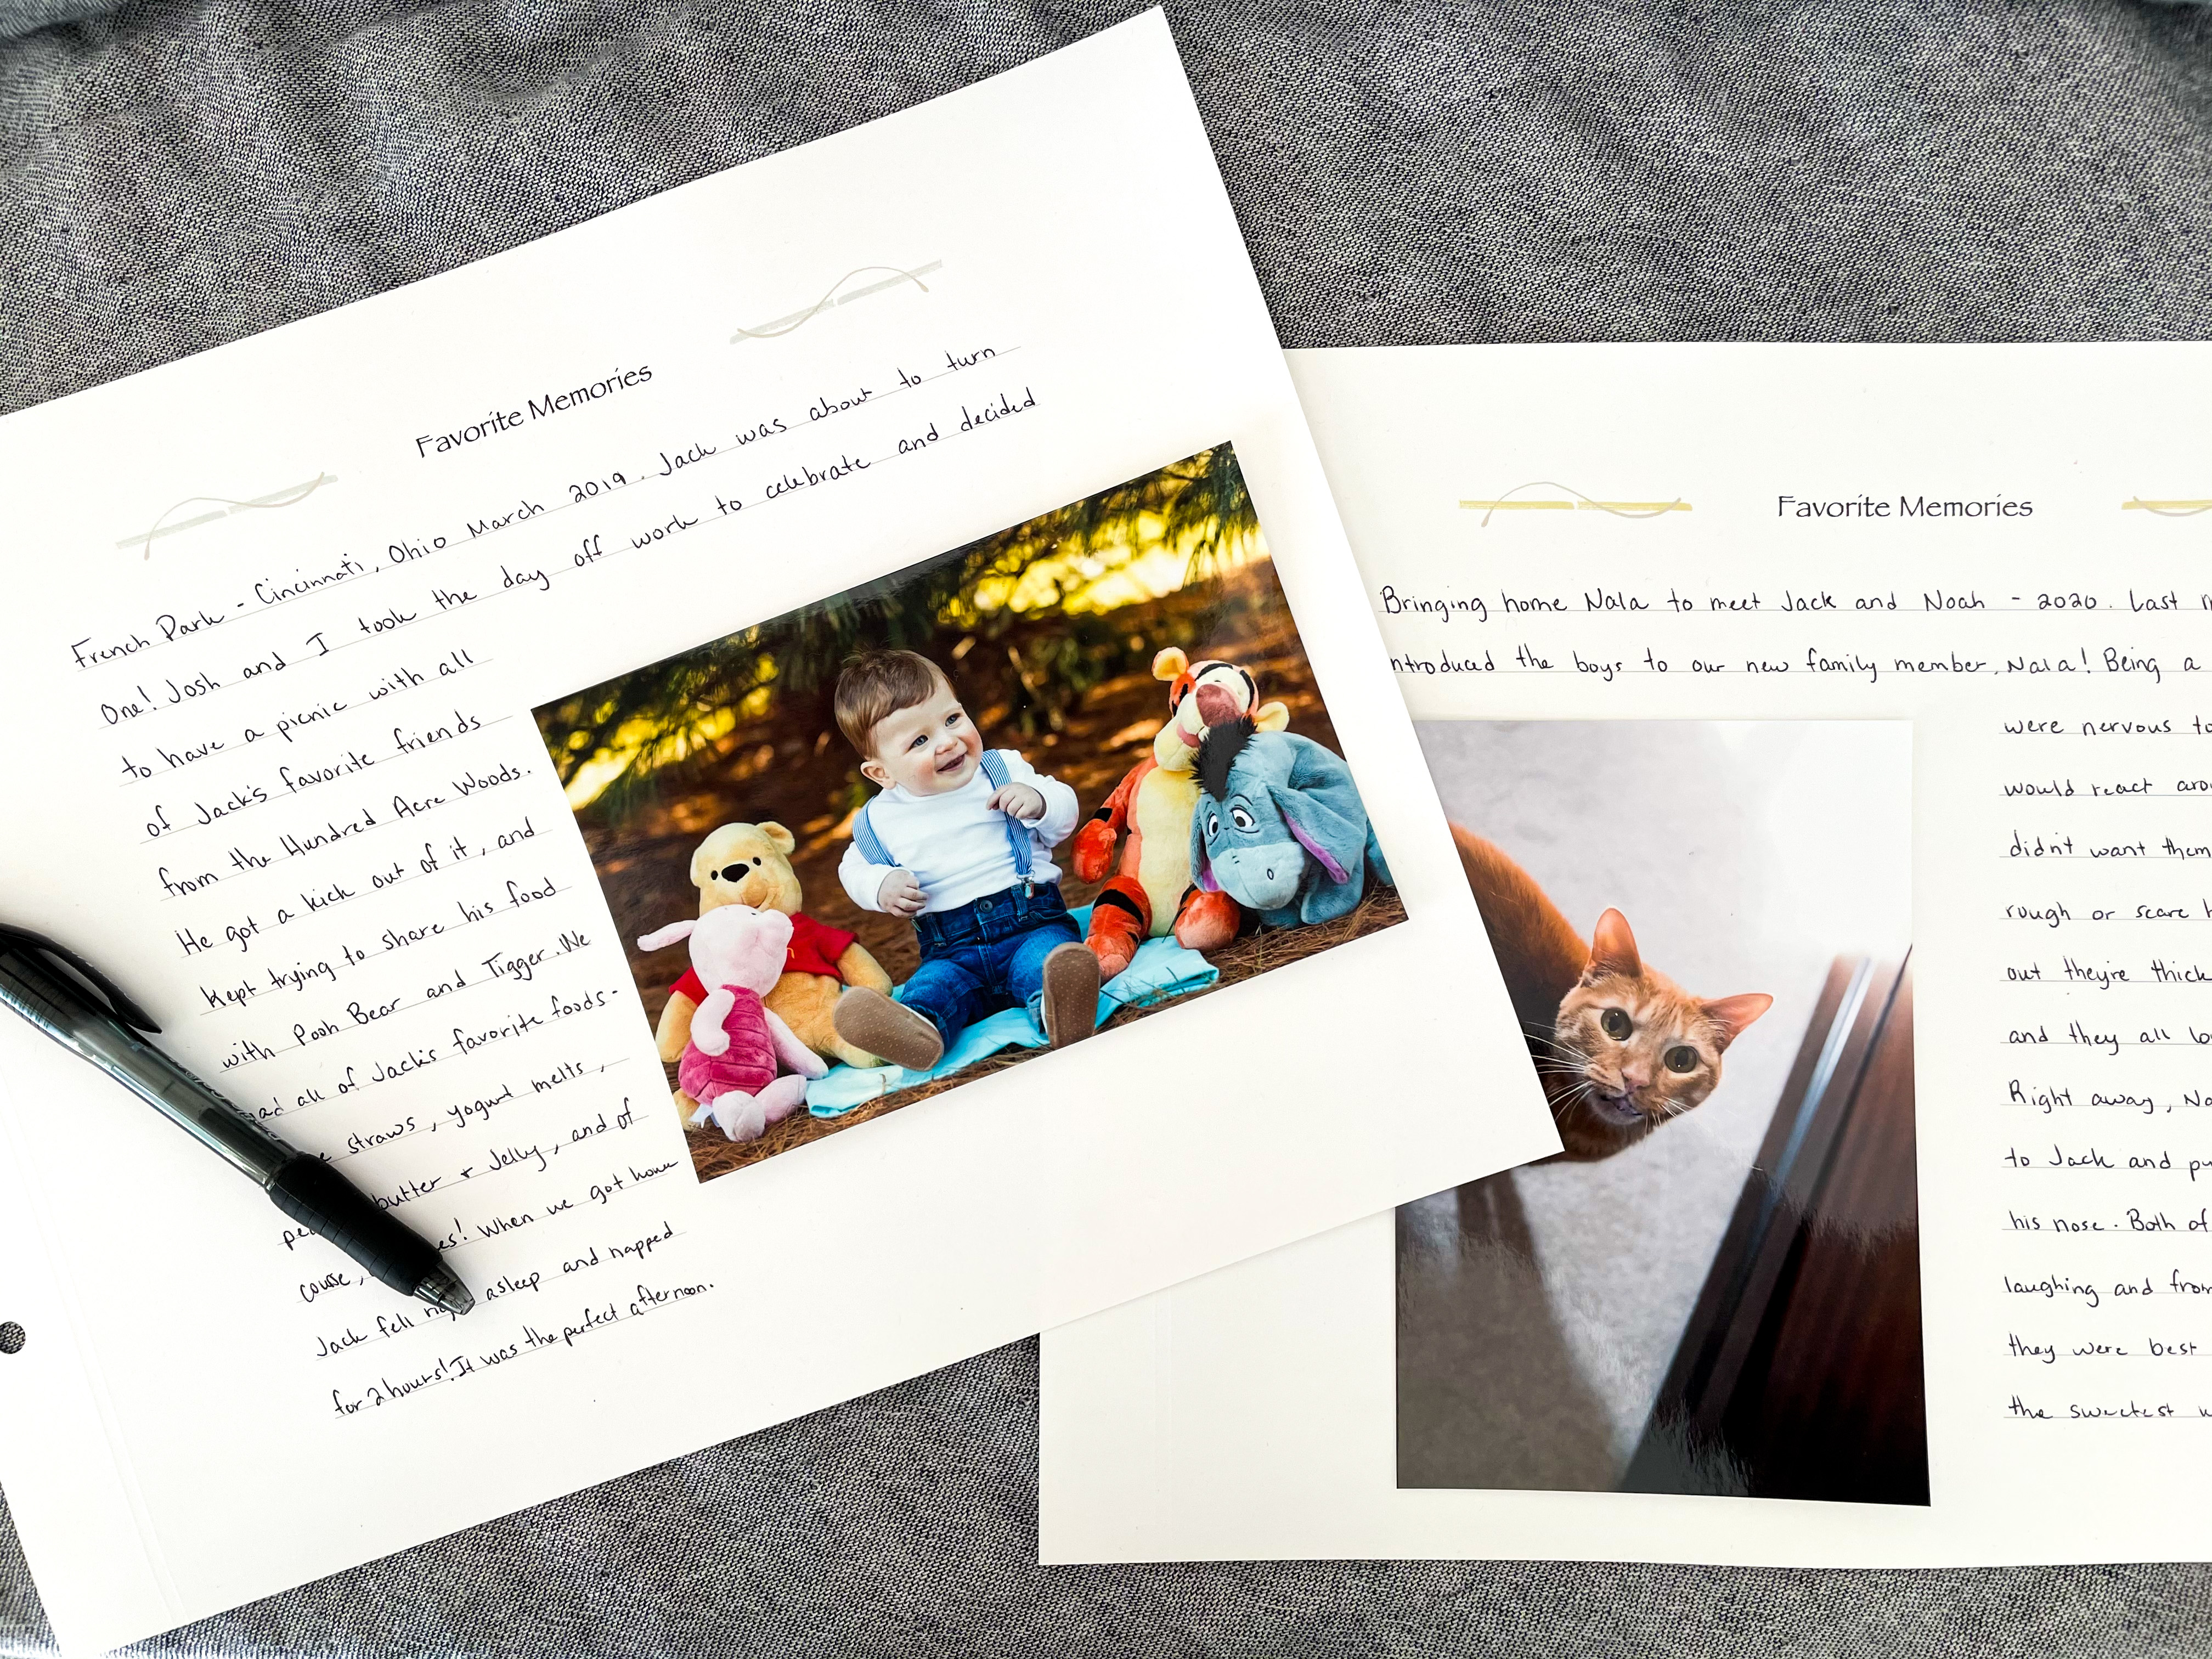 Favorite Memories Additional Insert Pages. How to easily document childhood memories